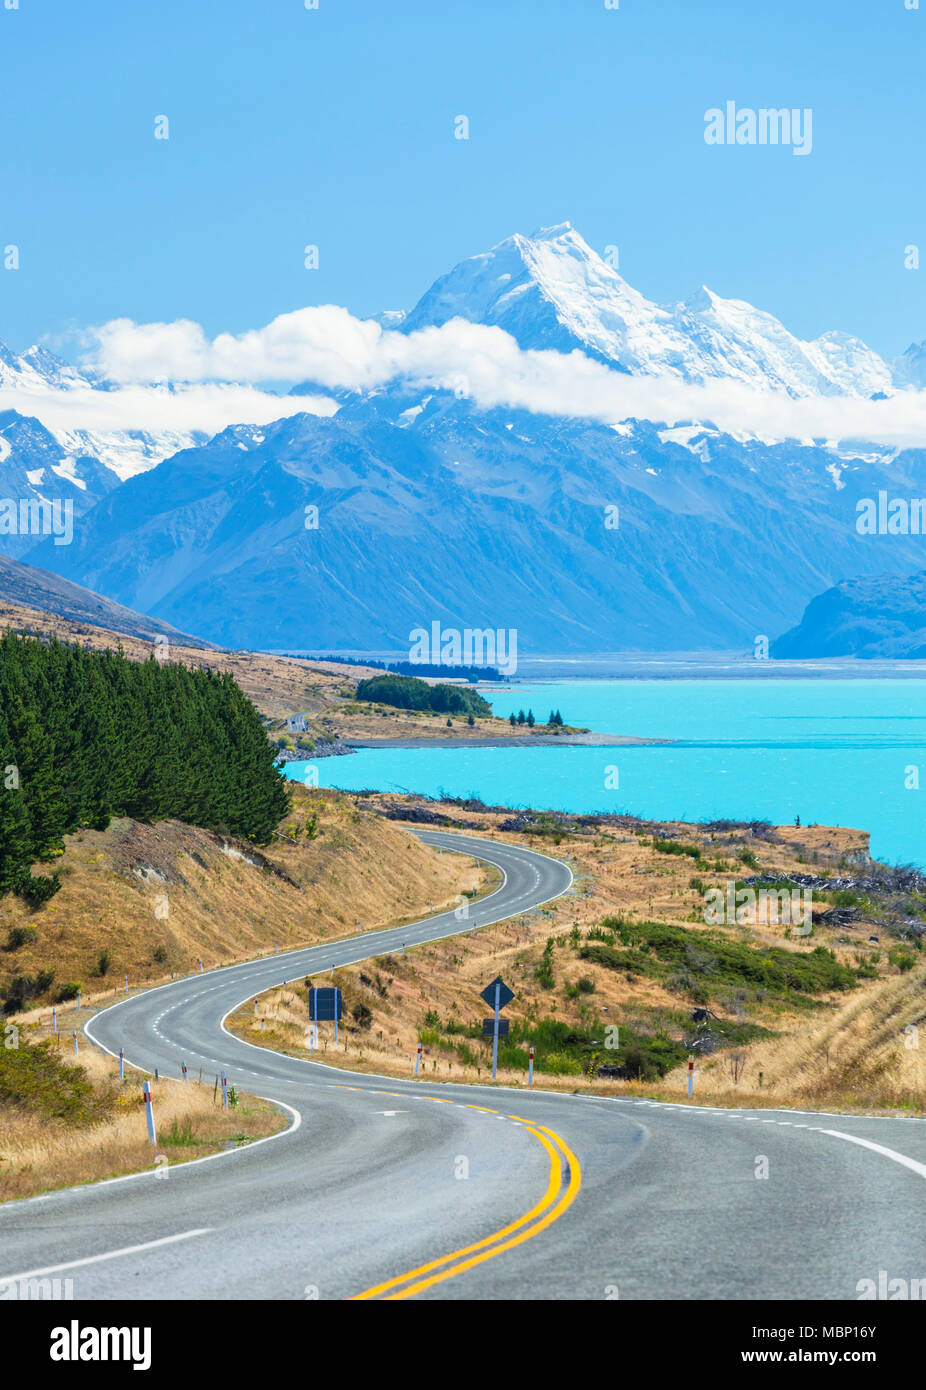 new zealand south island new zealand winding road through mount cook national park next to the glacial lake Pukaki new zealand  mackenzie district nz - Stock Image